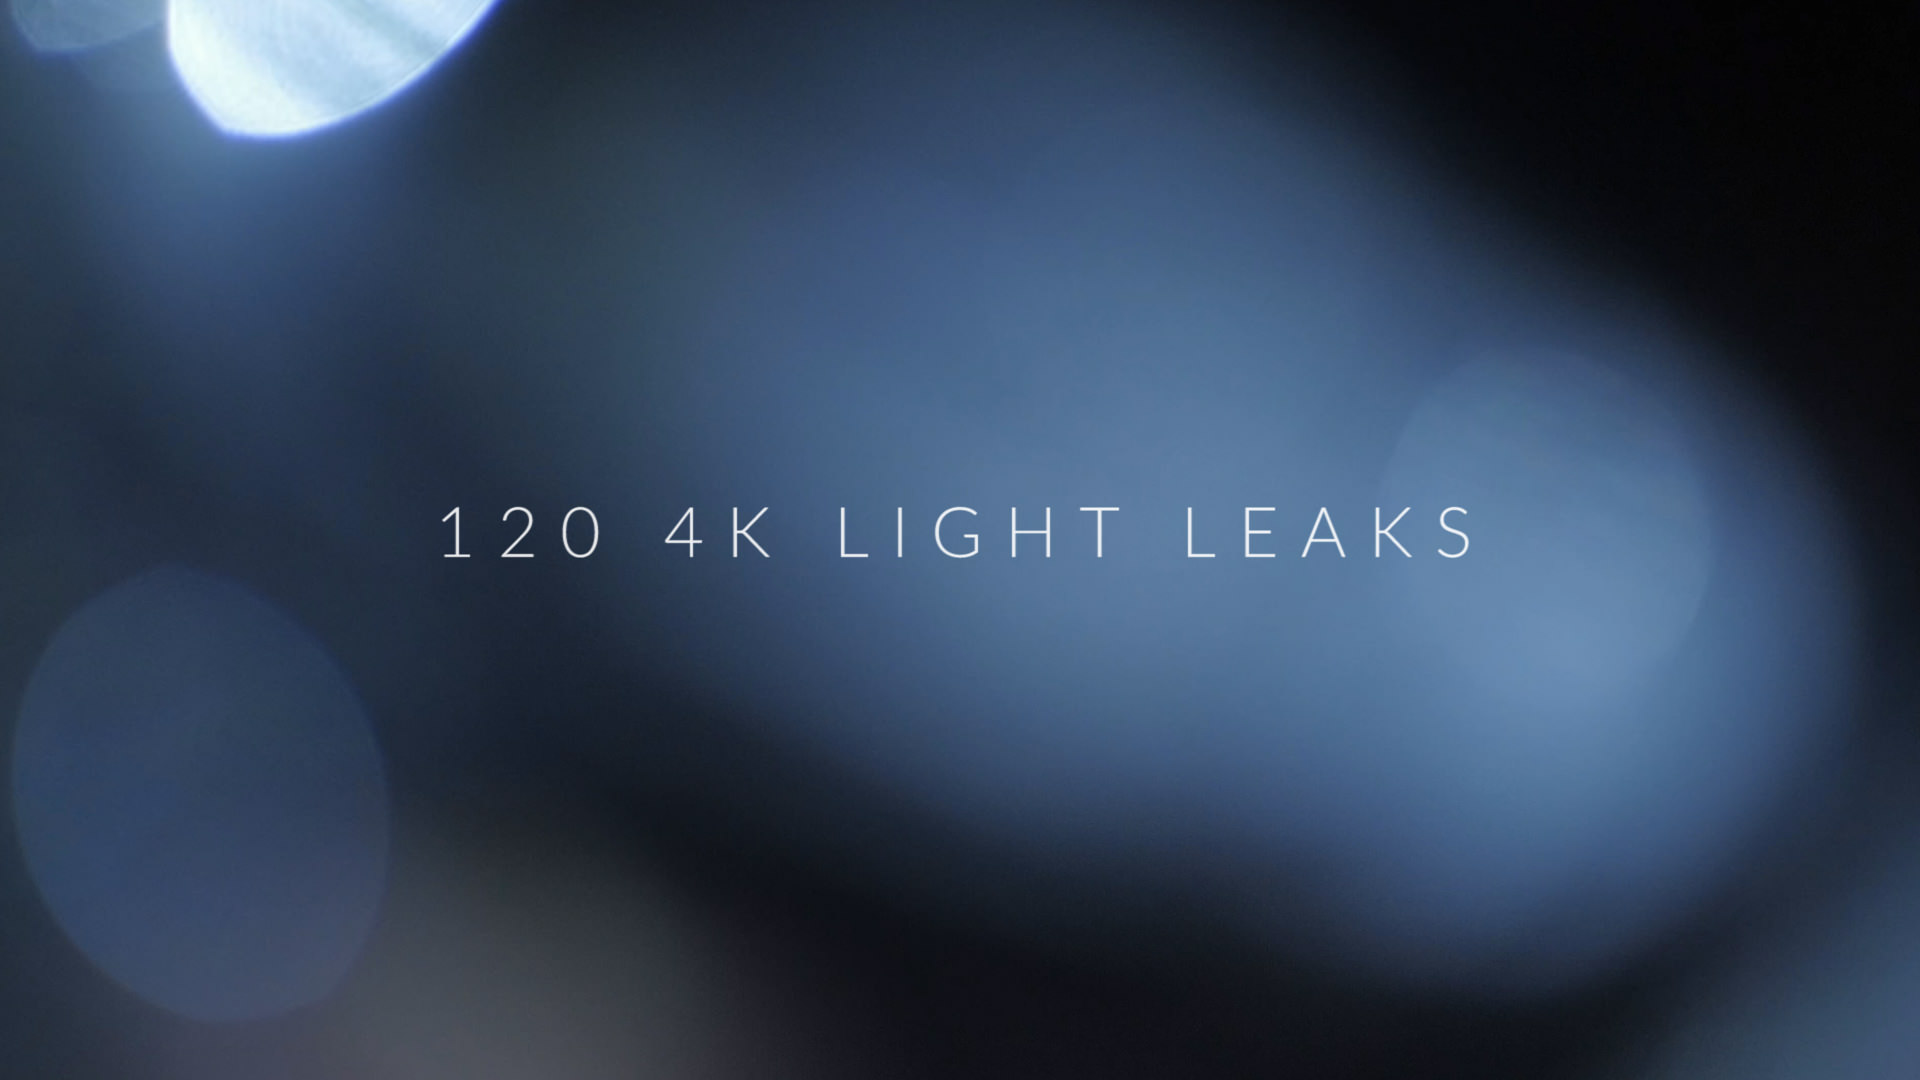 4K Light Leaks